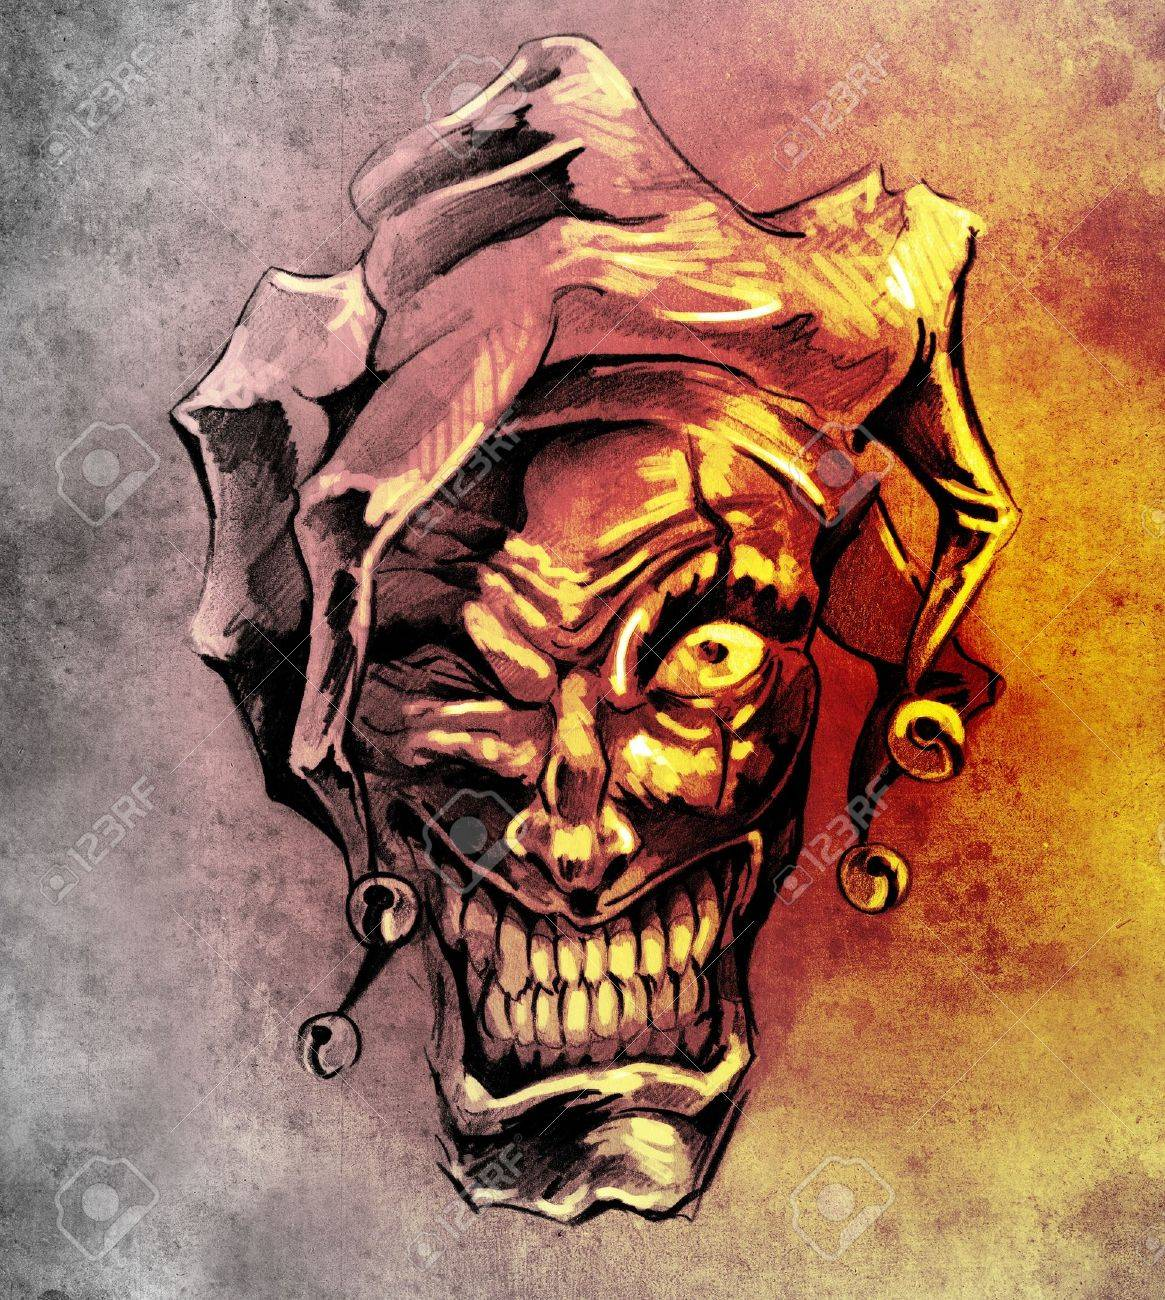 Fantasy Clown Joker Sketch Of Tattoo Art Over Dirty Background Stock Photo Picture And Royalty Free Image Image 13454219